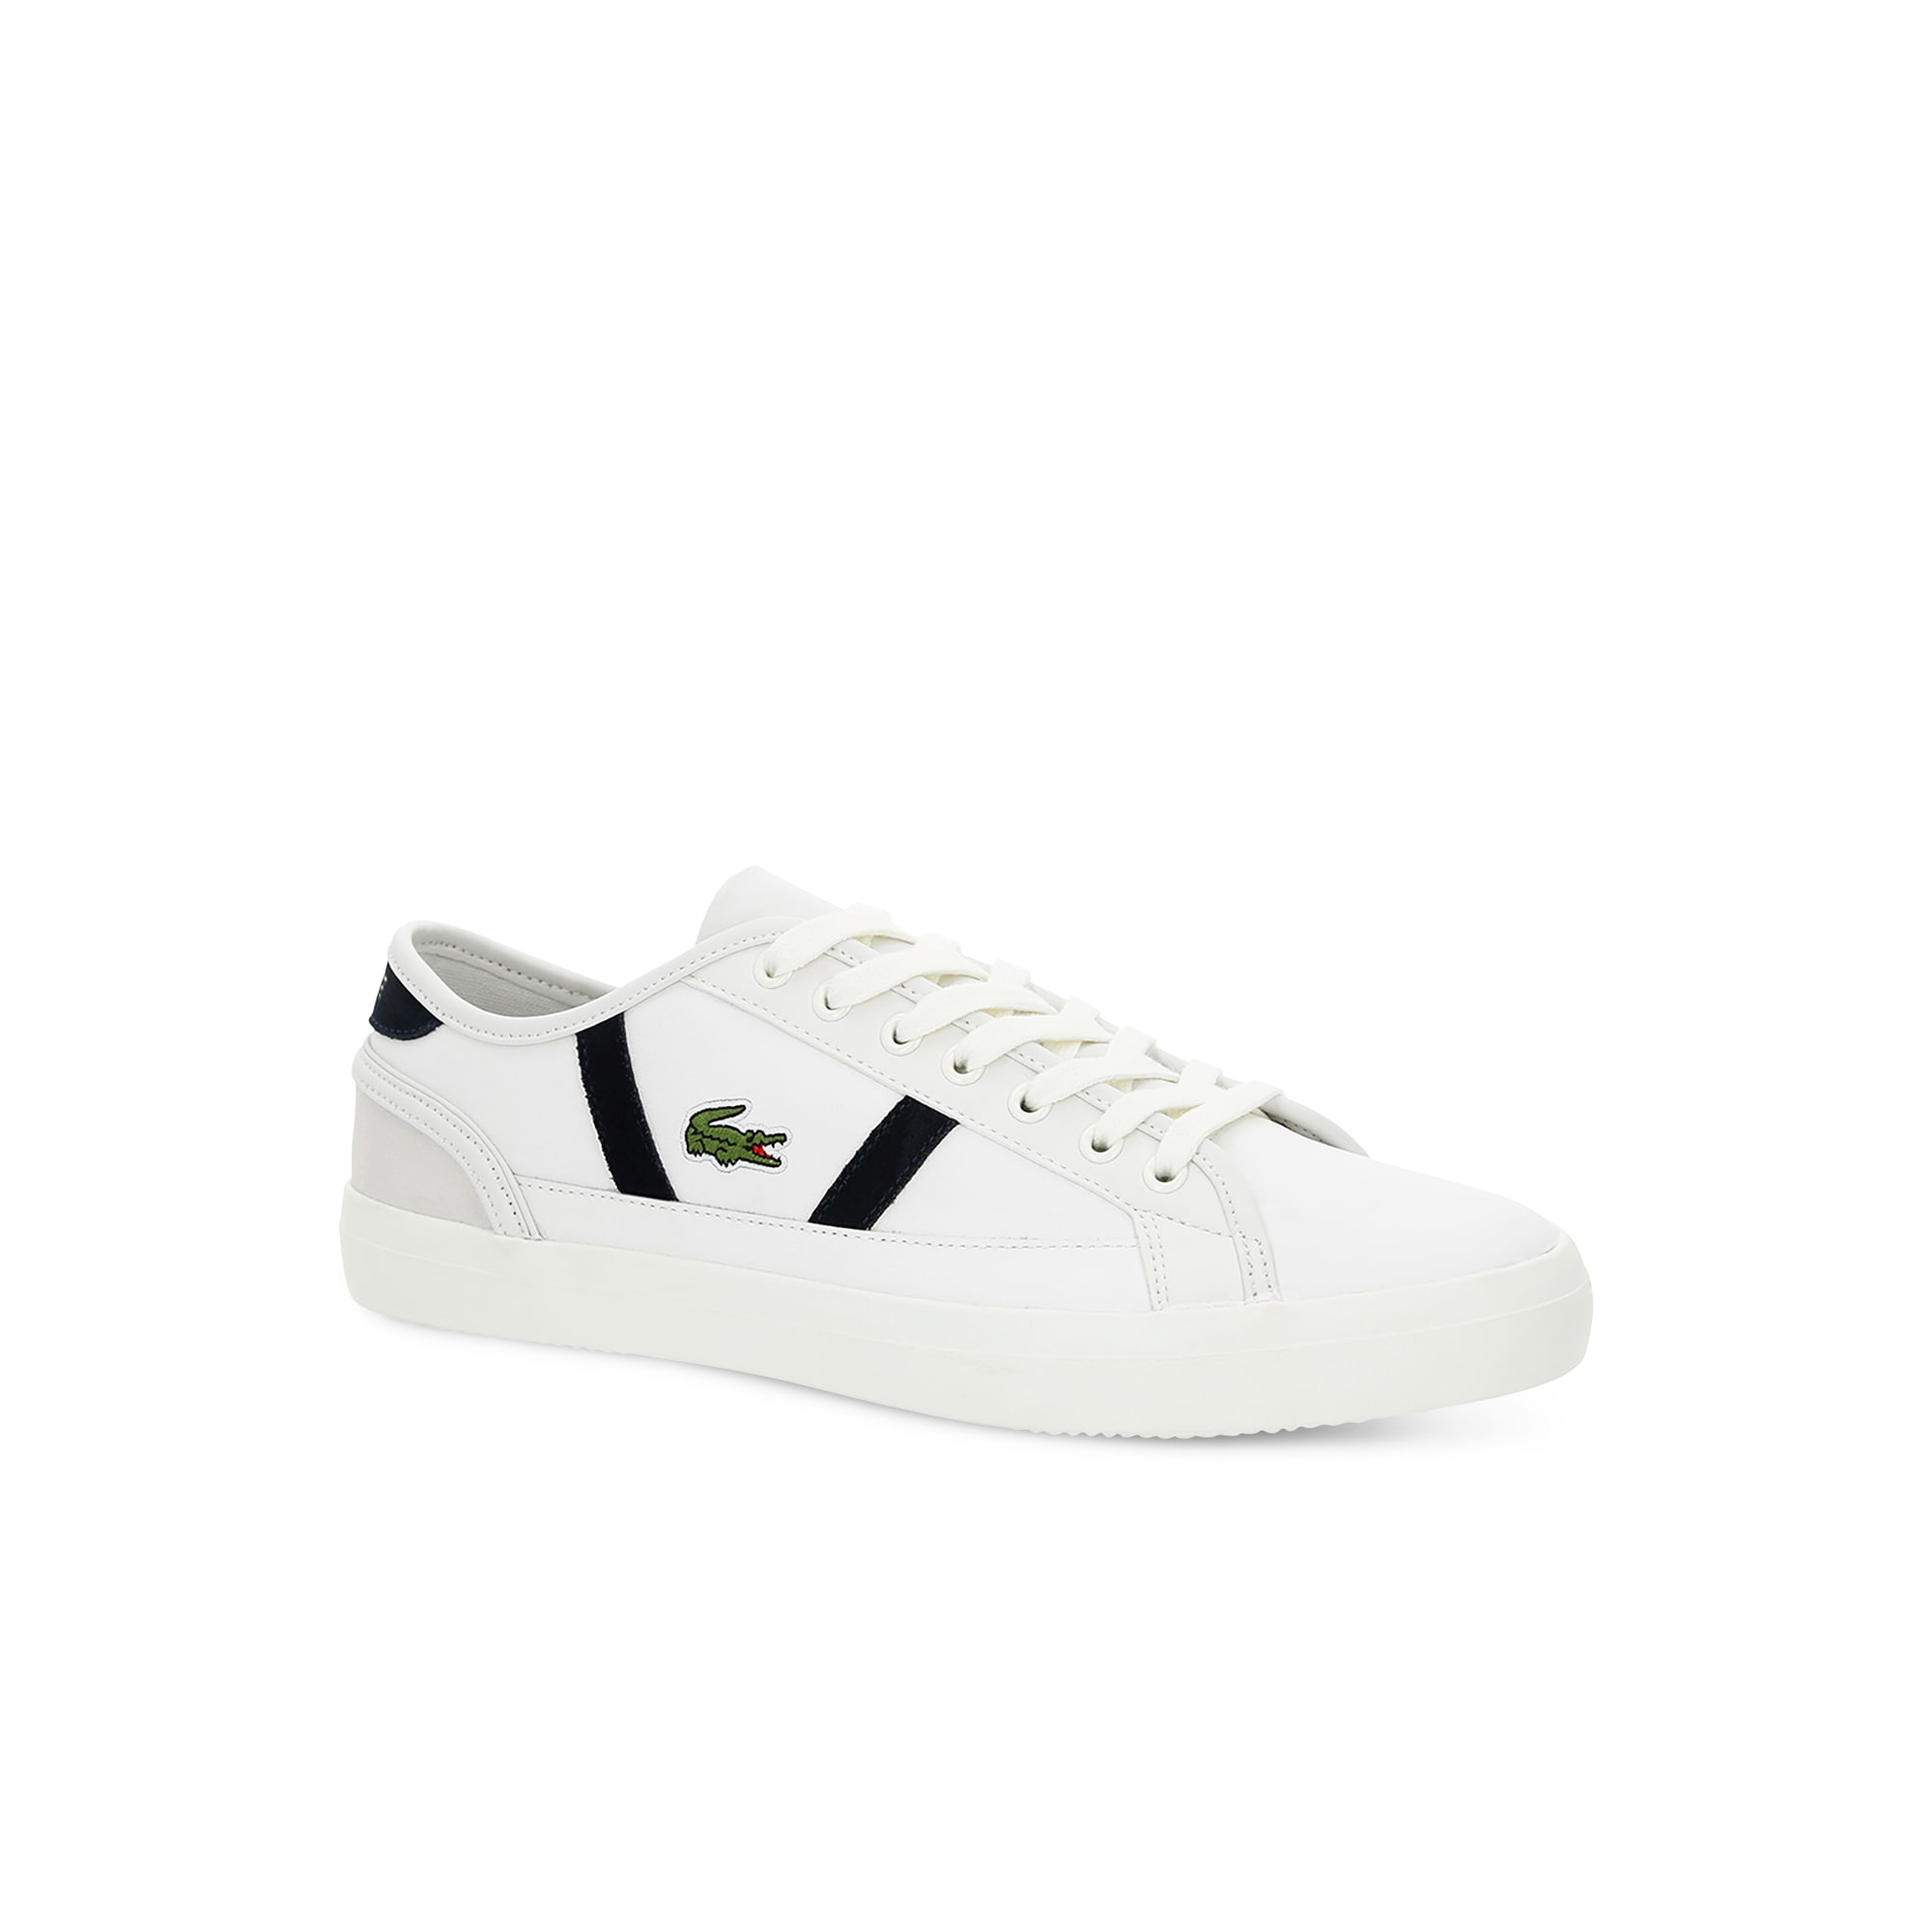 a970c50d2387ca Lacoste shoes - Shop online all Lacoste shoes